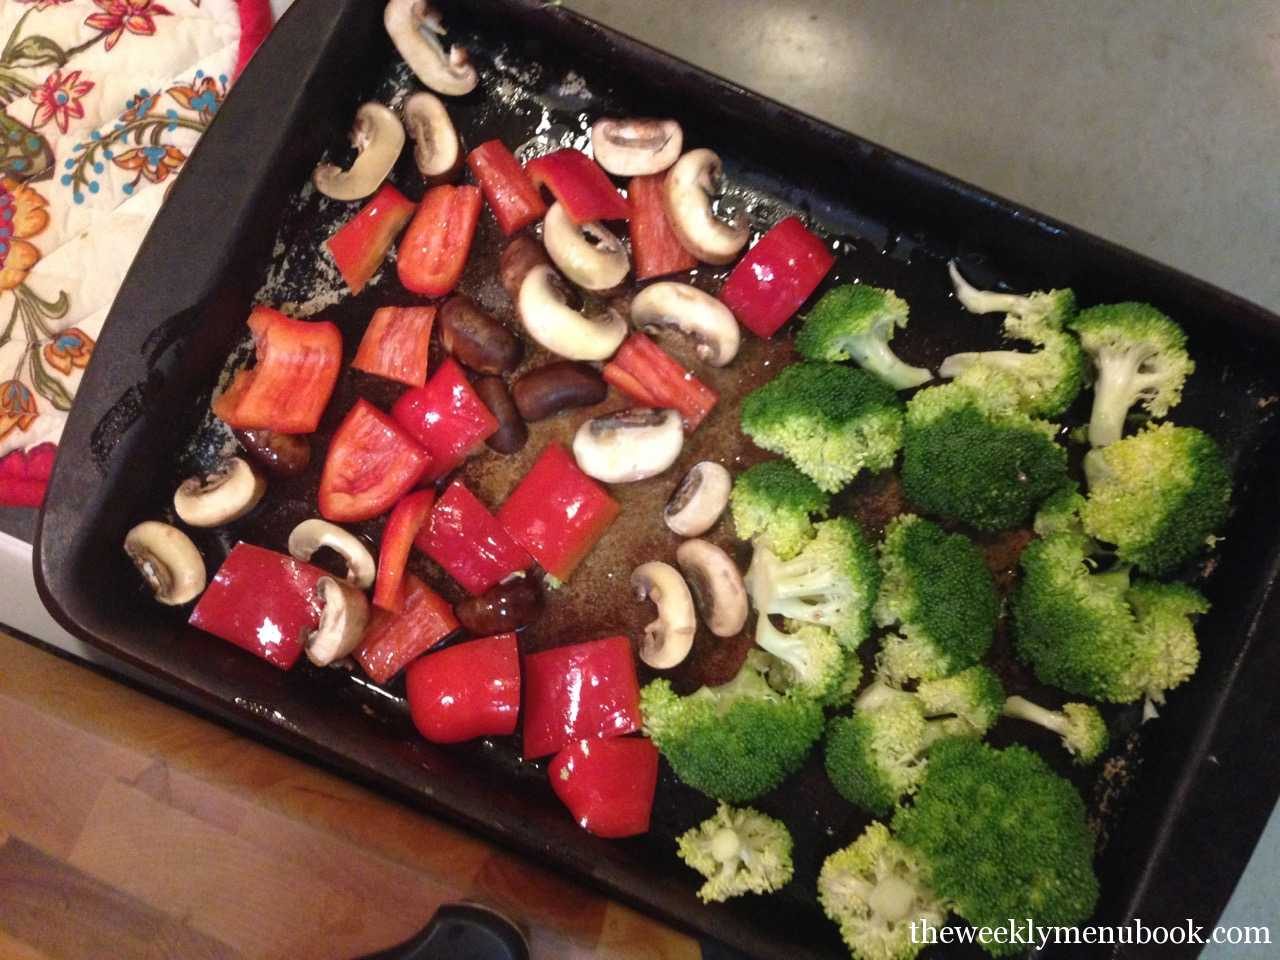 Roasted Red Pepper, Mushrooms and Broccoli